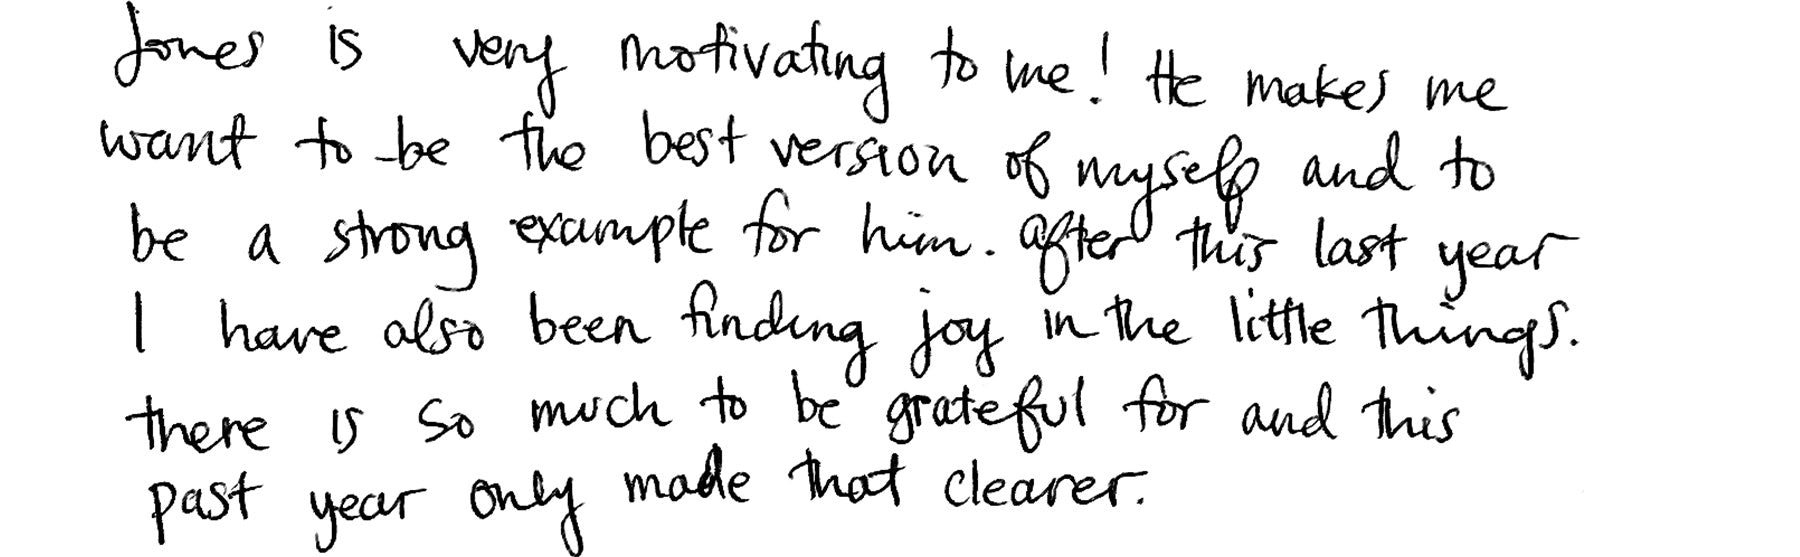 Jones is very motivating to me! He makes me want to be the best version of myself and to be a strong example for him. After this last year I have also been finding joy in the little things. There is so much to be grateful for and this past year only made that clearer.